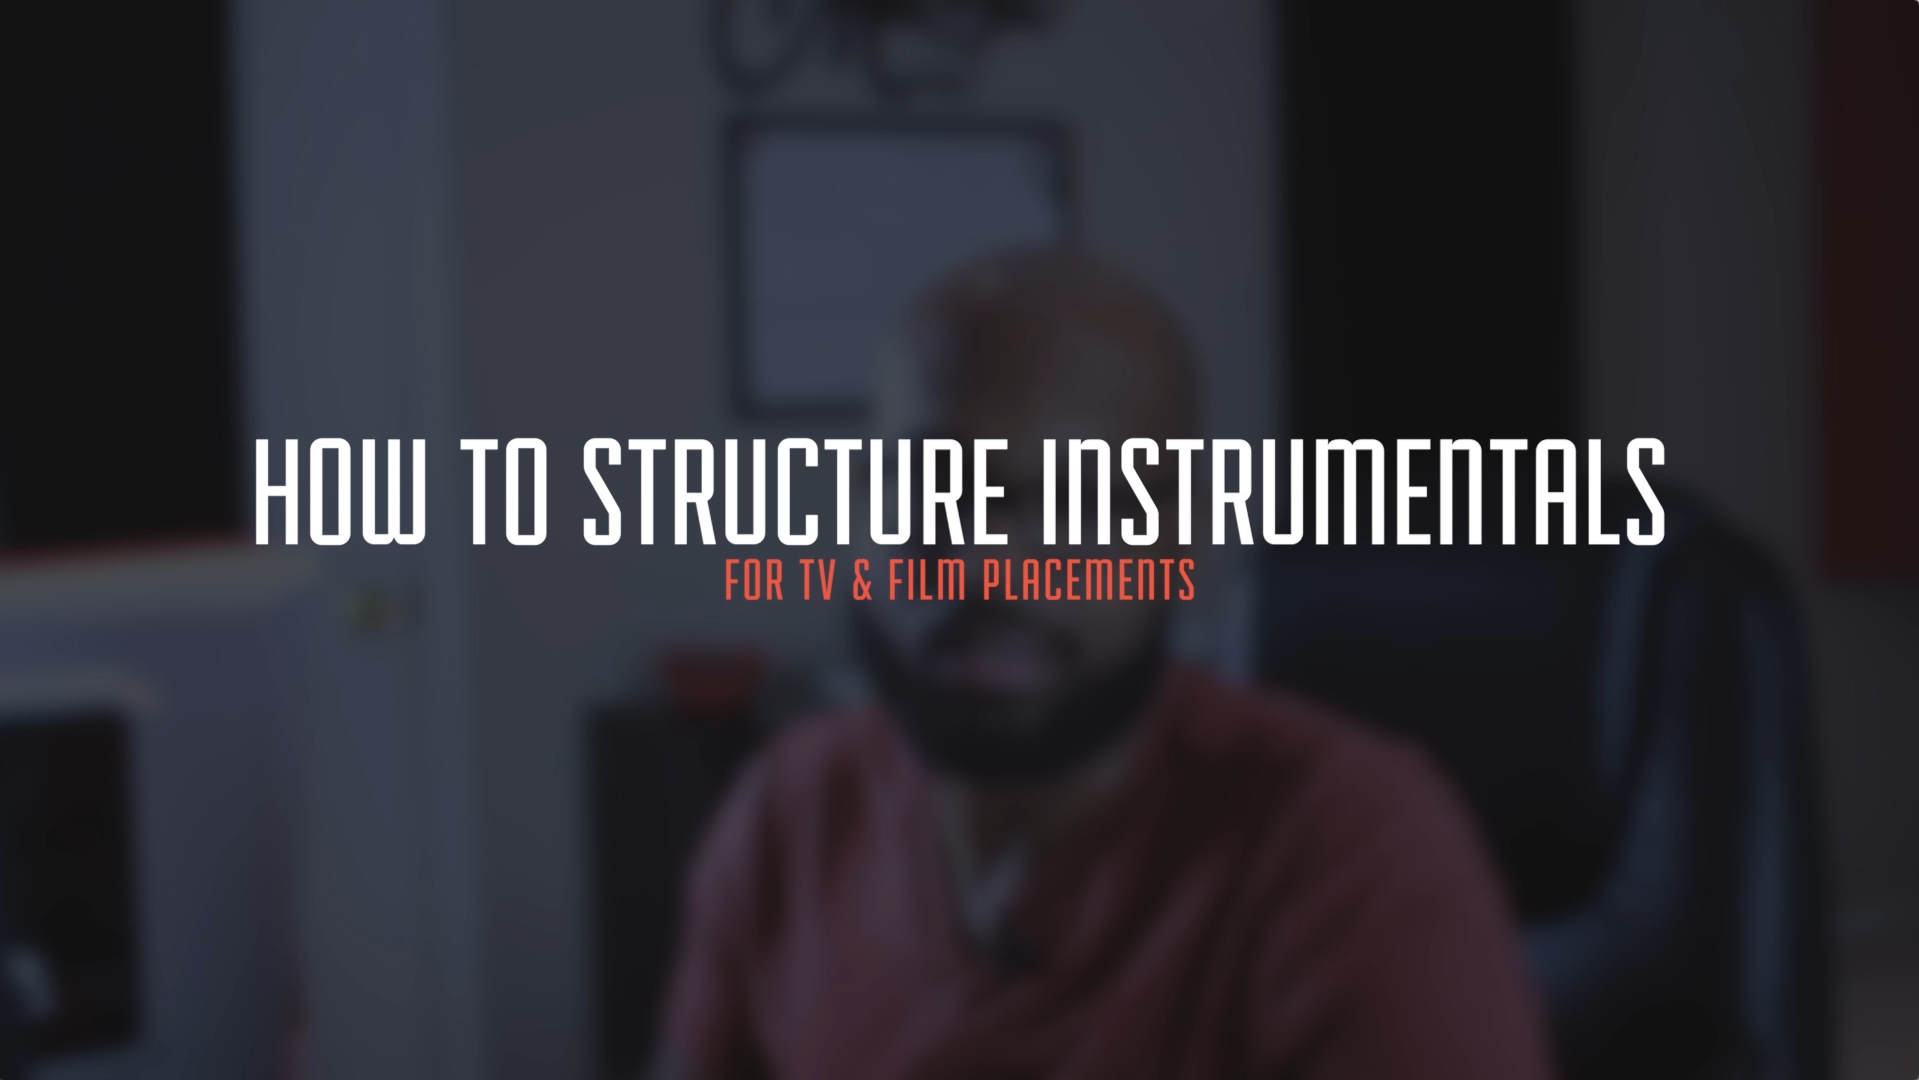 How To Structure Instrumentals For TV & Film